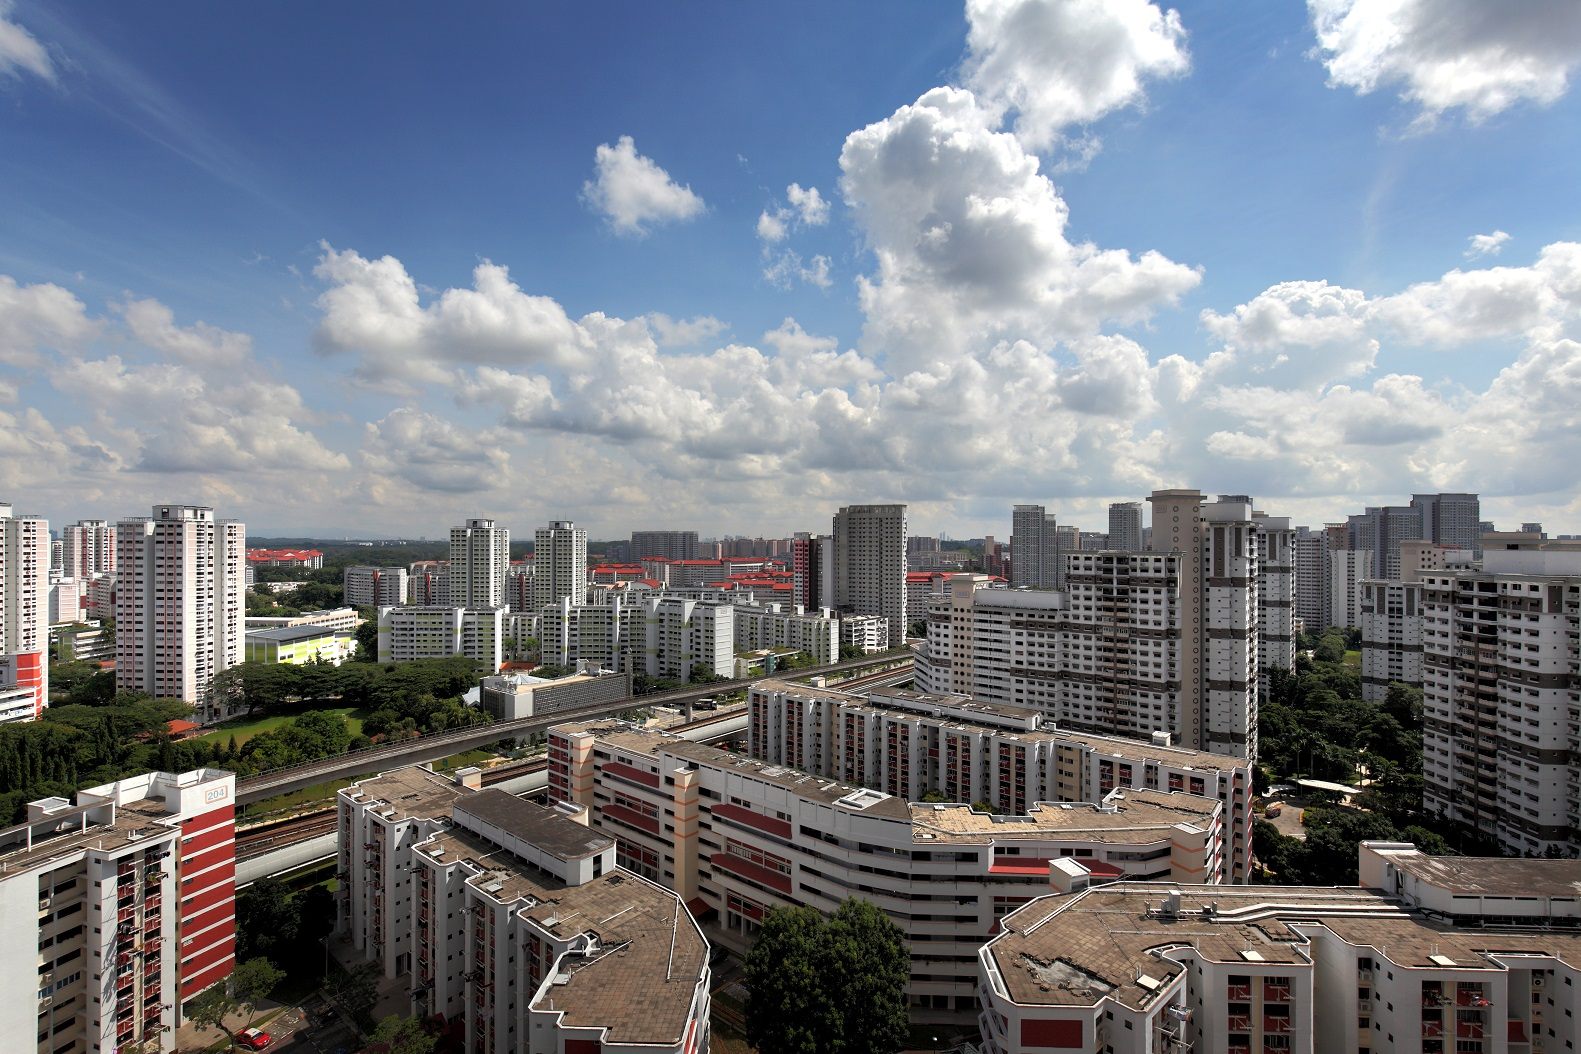 HDB resale price index rose by 0.4% q-o-q in 4Q2019, after a 0.1% uptick in 3Q2019 (Photo: Samuel Isaac Chua/EdgeProp Singapore) - EDGEPROP SINGAPORE